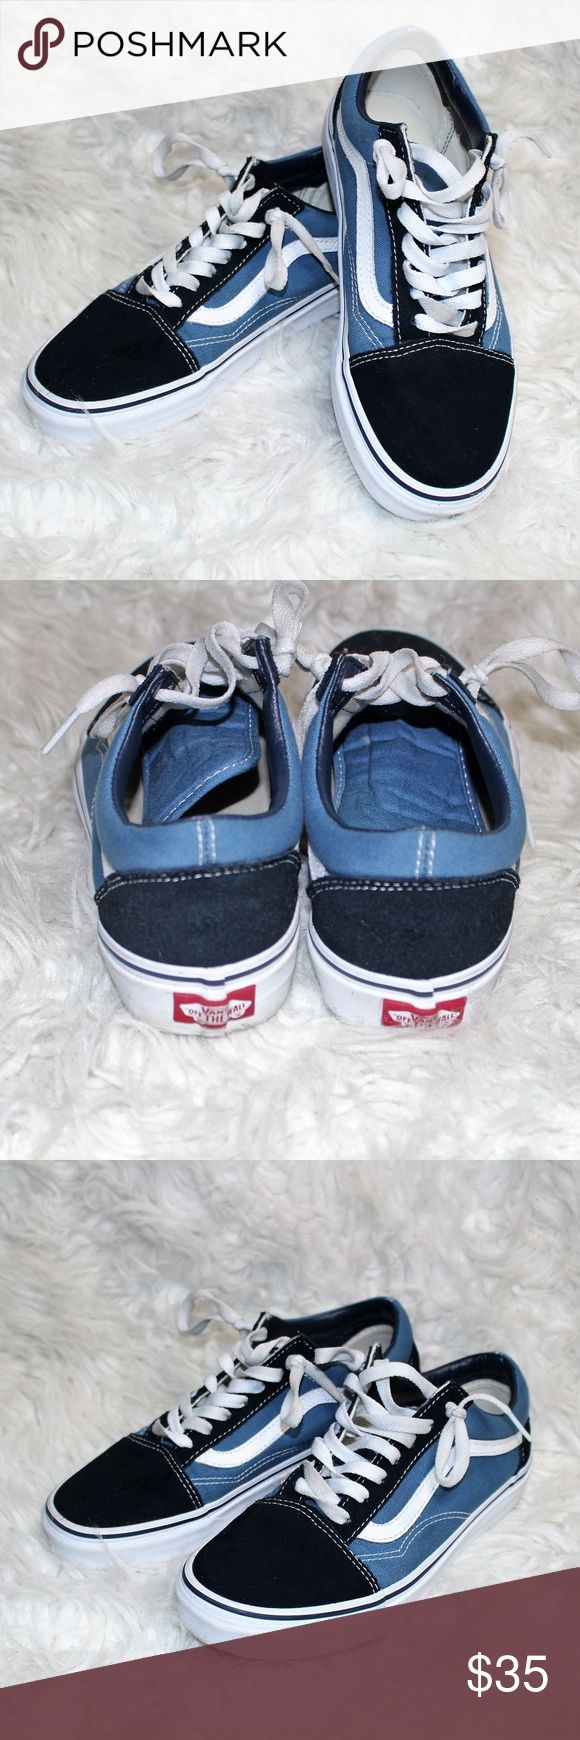 VANS   Old Skool Navy & White (Mens 5.5/Womens 7) Super trendy yet still classic. Vans Old Skool Navy and White Shoes. EUC! Lightly worn.   Brand   Vans  Size   Womens - 7 / Mens 5.5   * Smoke Free and Pet Free Home * Vans Shoes